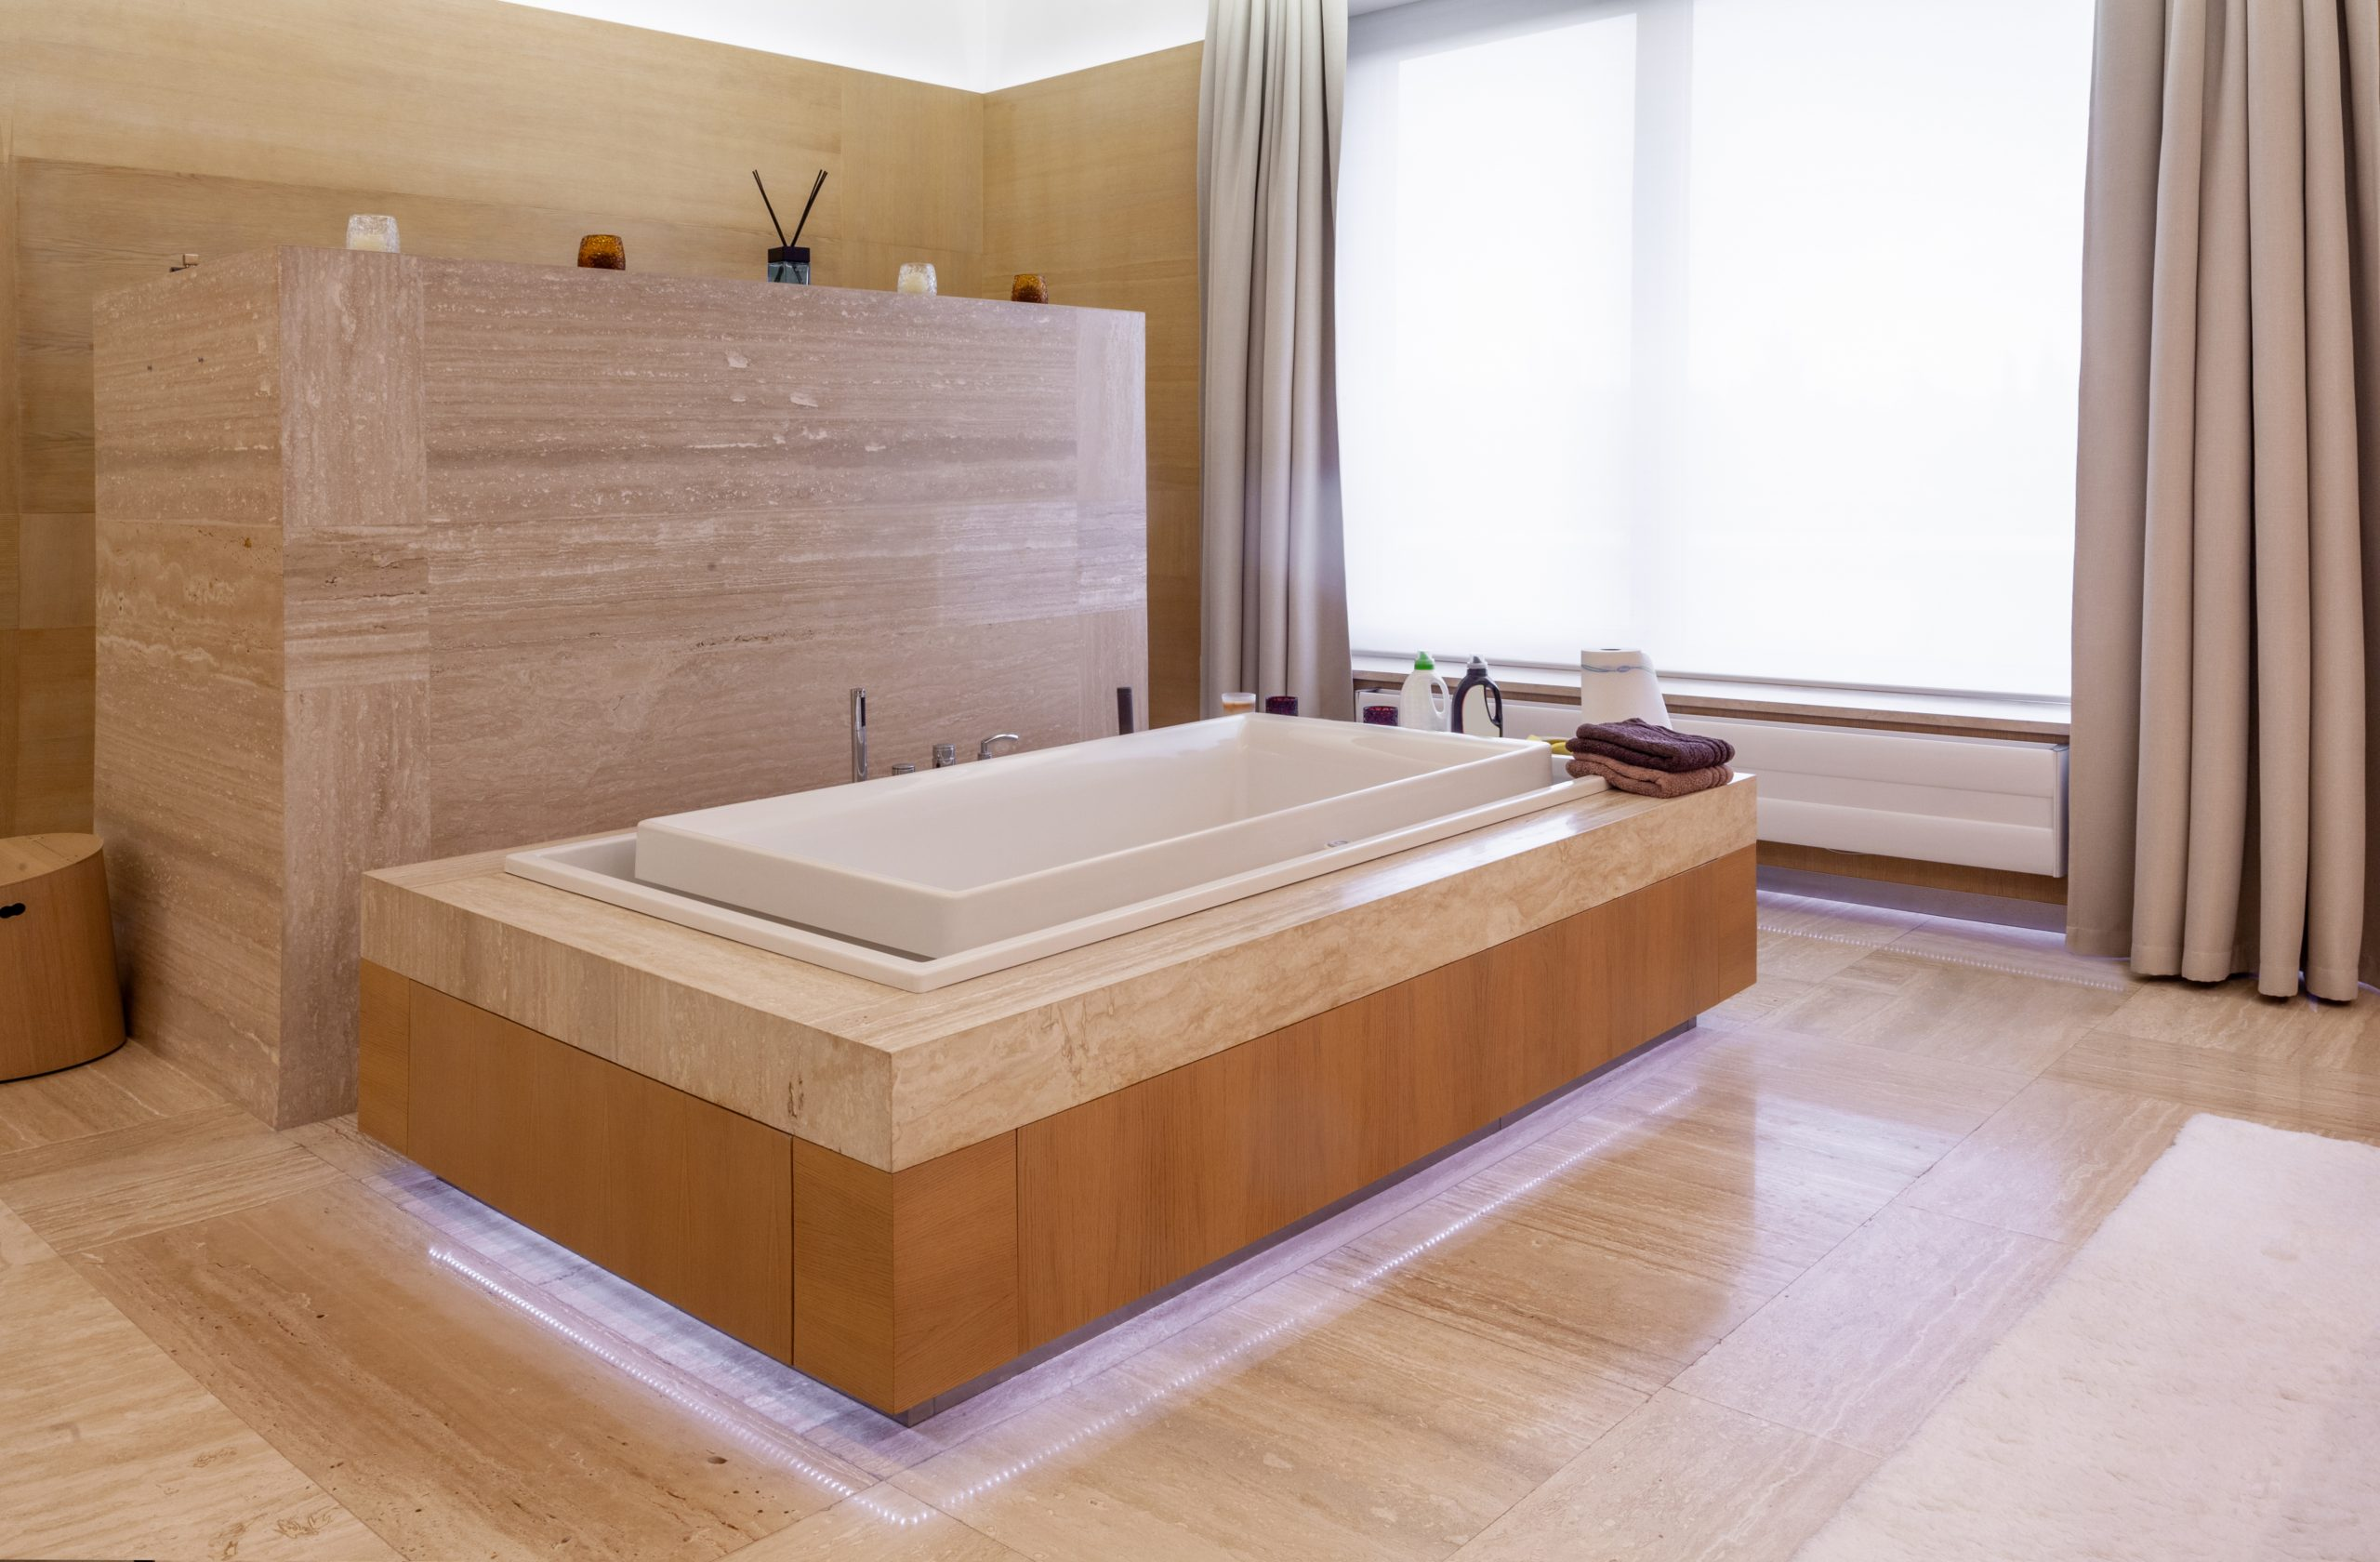 What Bathtub Material is Easiest to Clean